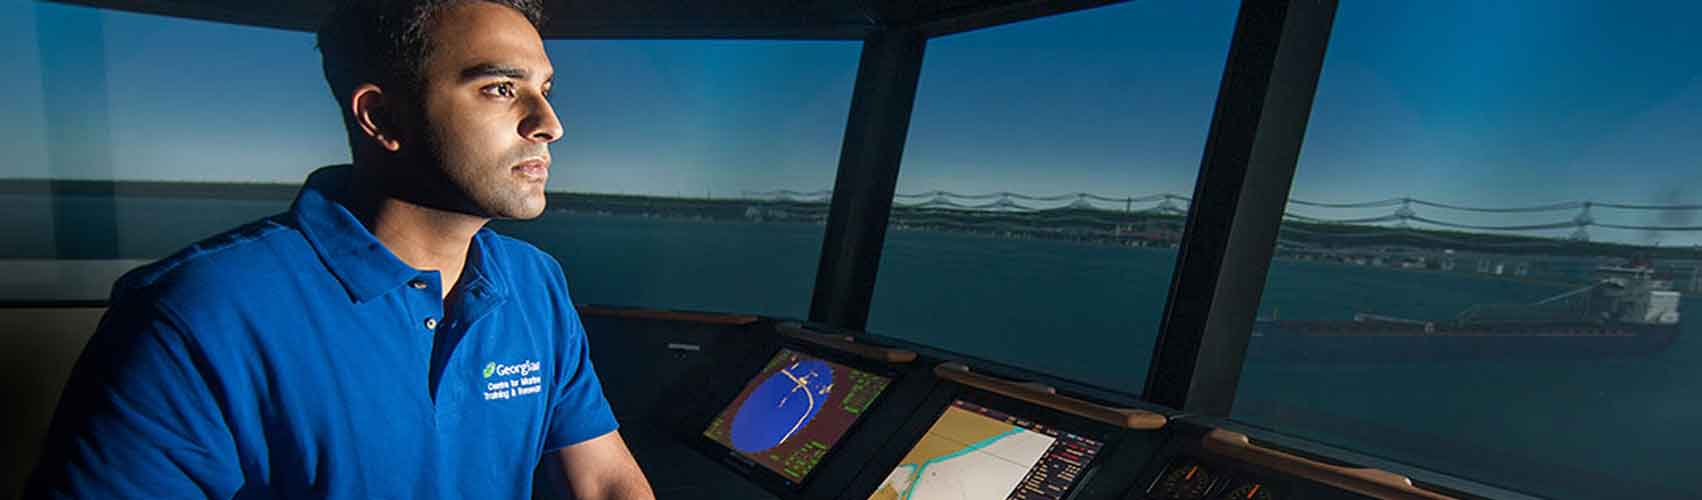 Marine student on the bridge of a marine ship simulator